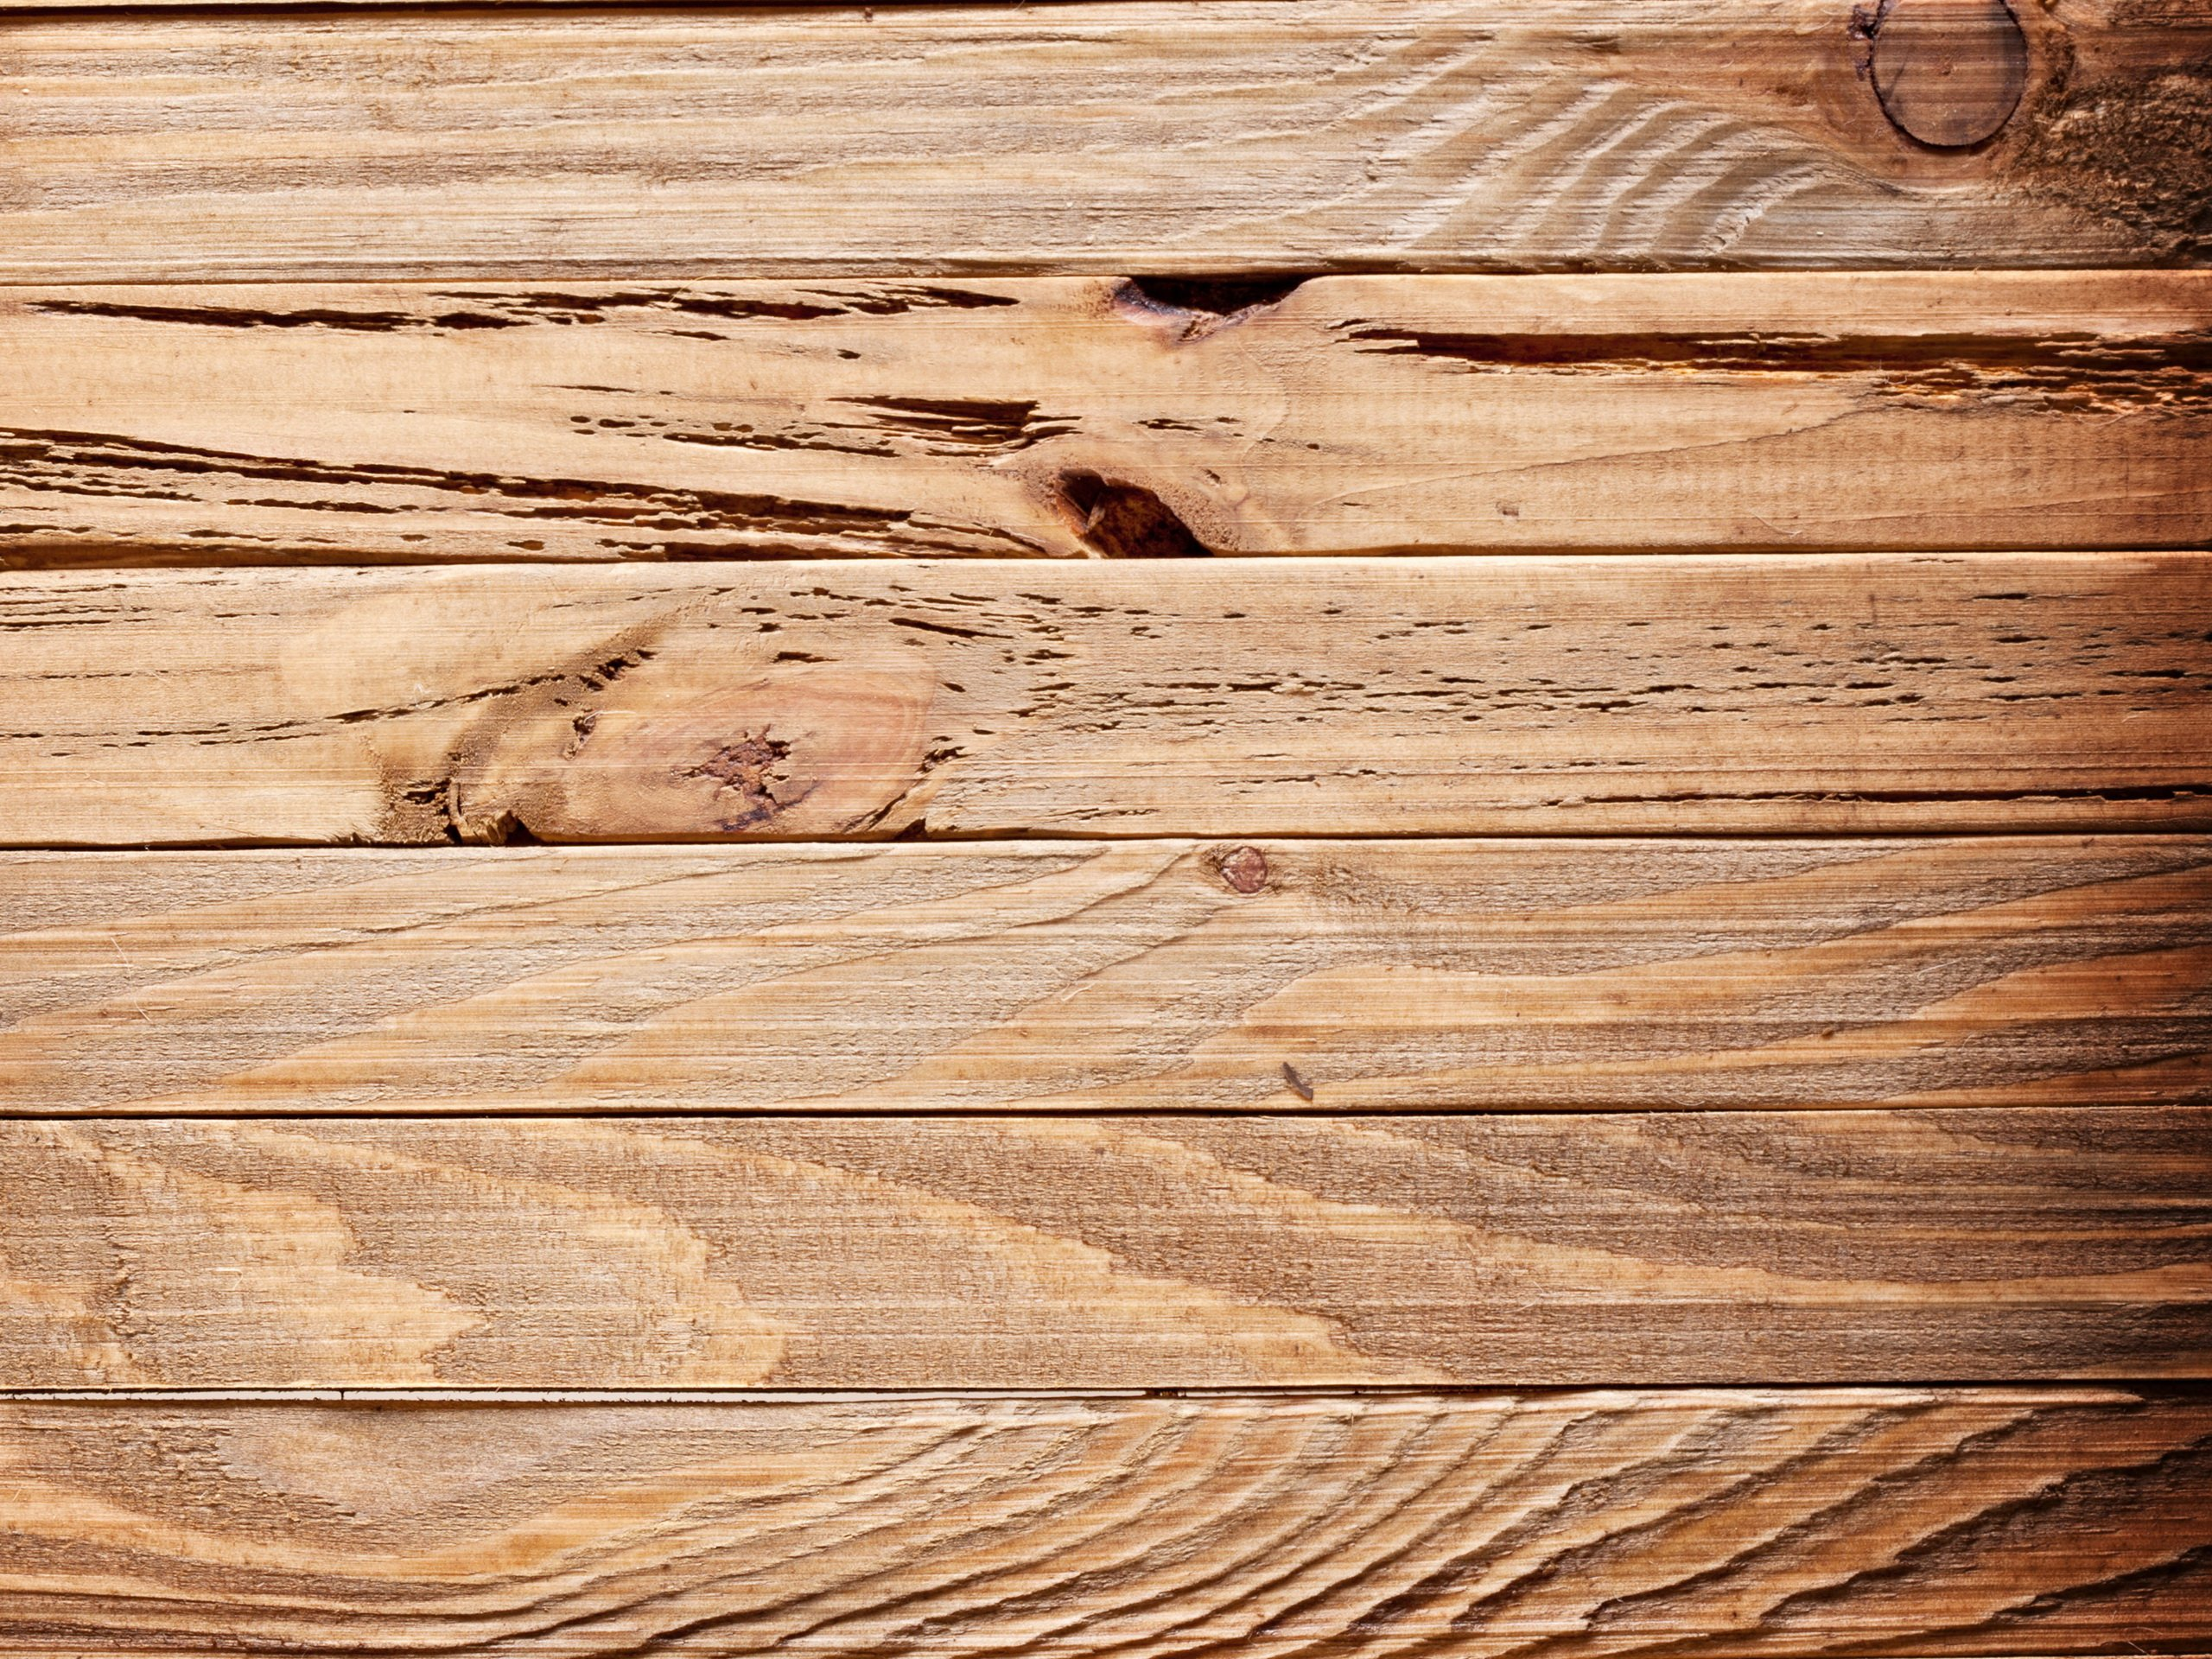 with wooden planks eaten by whom   wallpapers55 com   Best Wallpapers. Wood Plank Wallpaper   WallpaperSafari